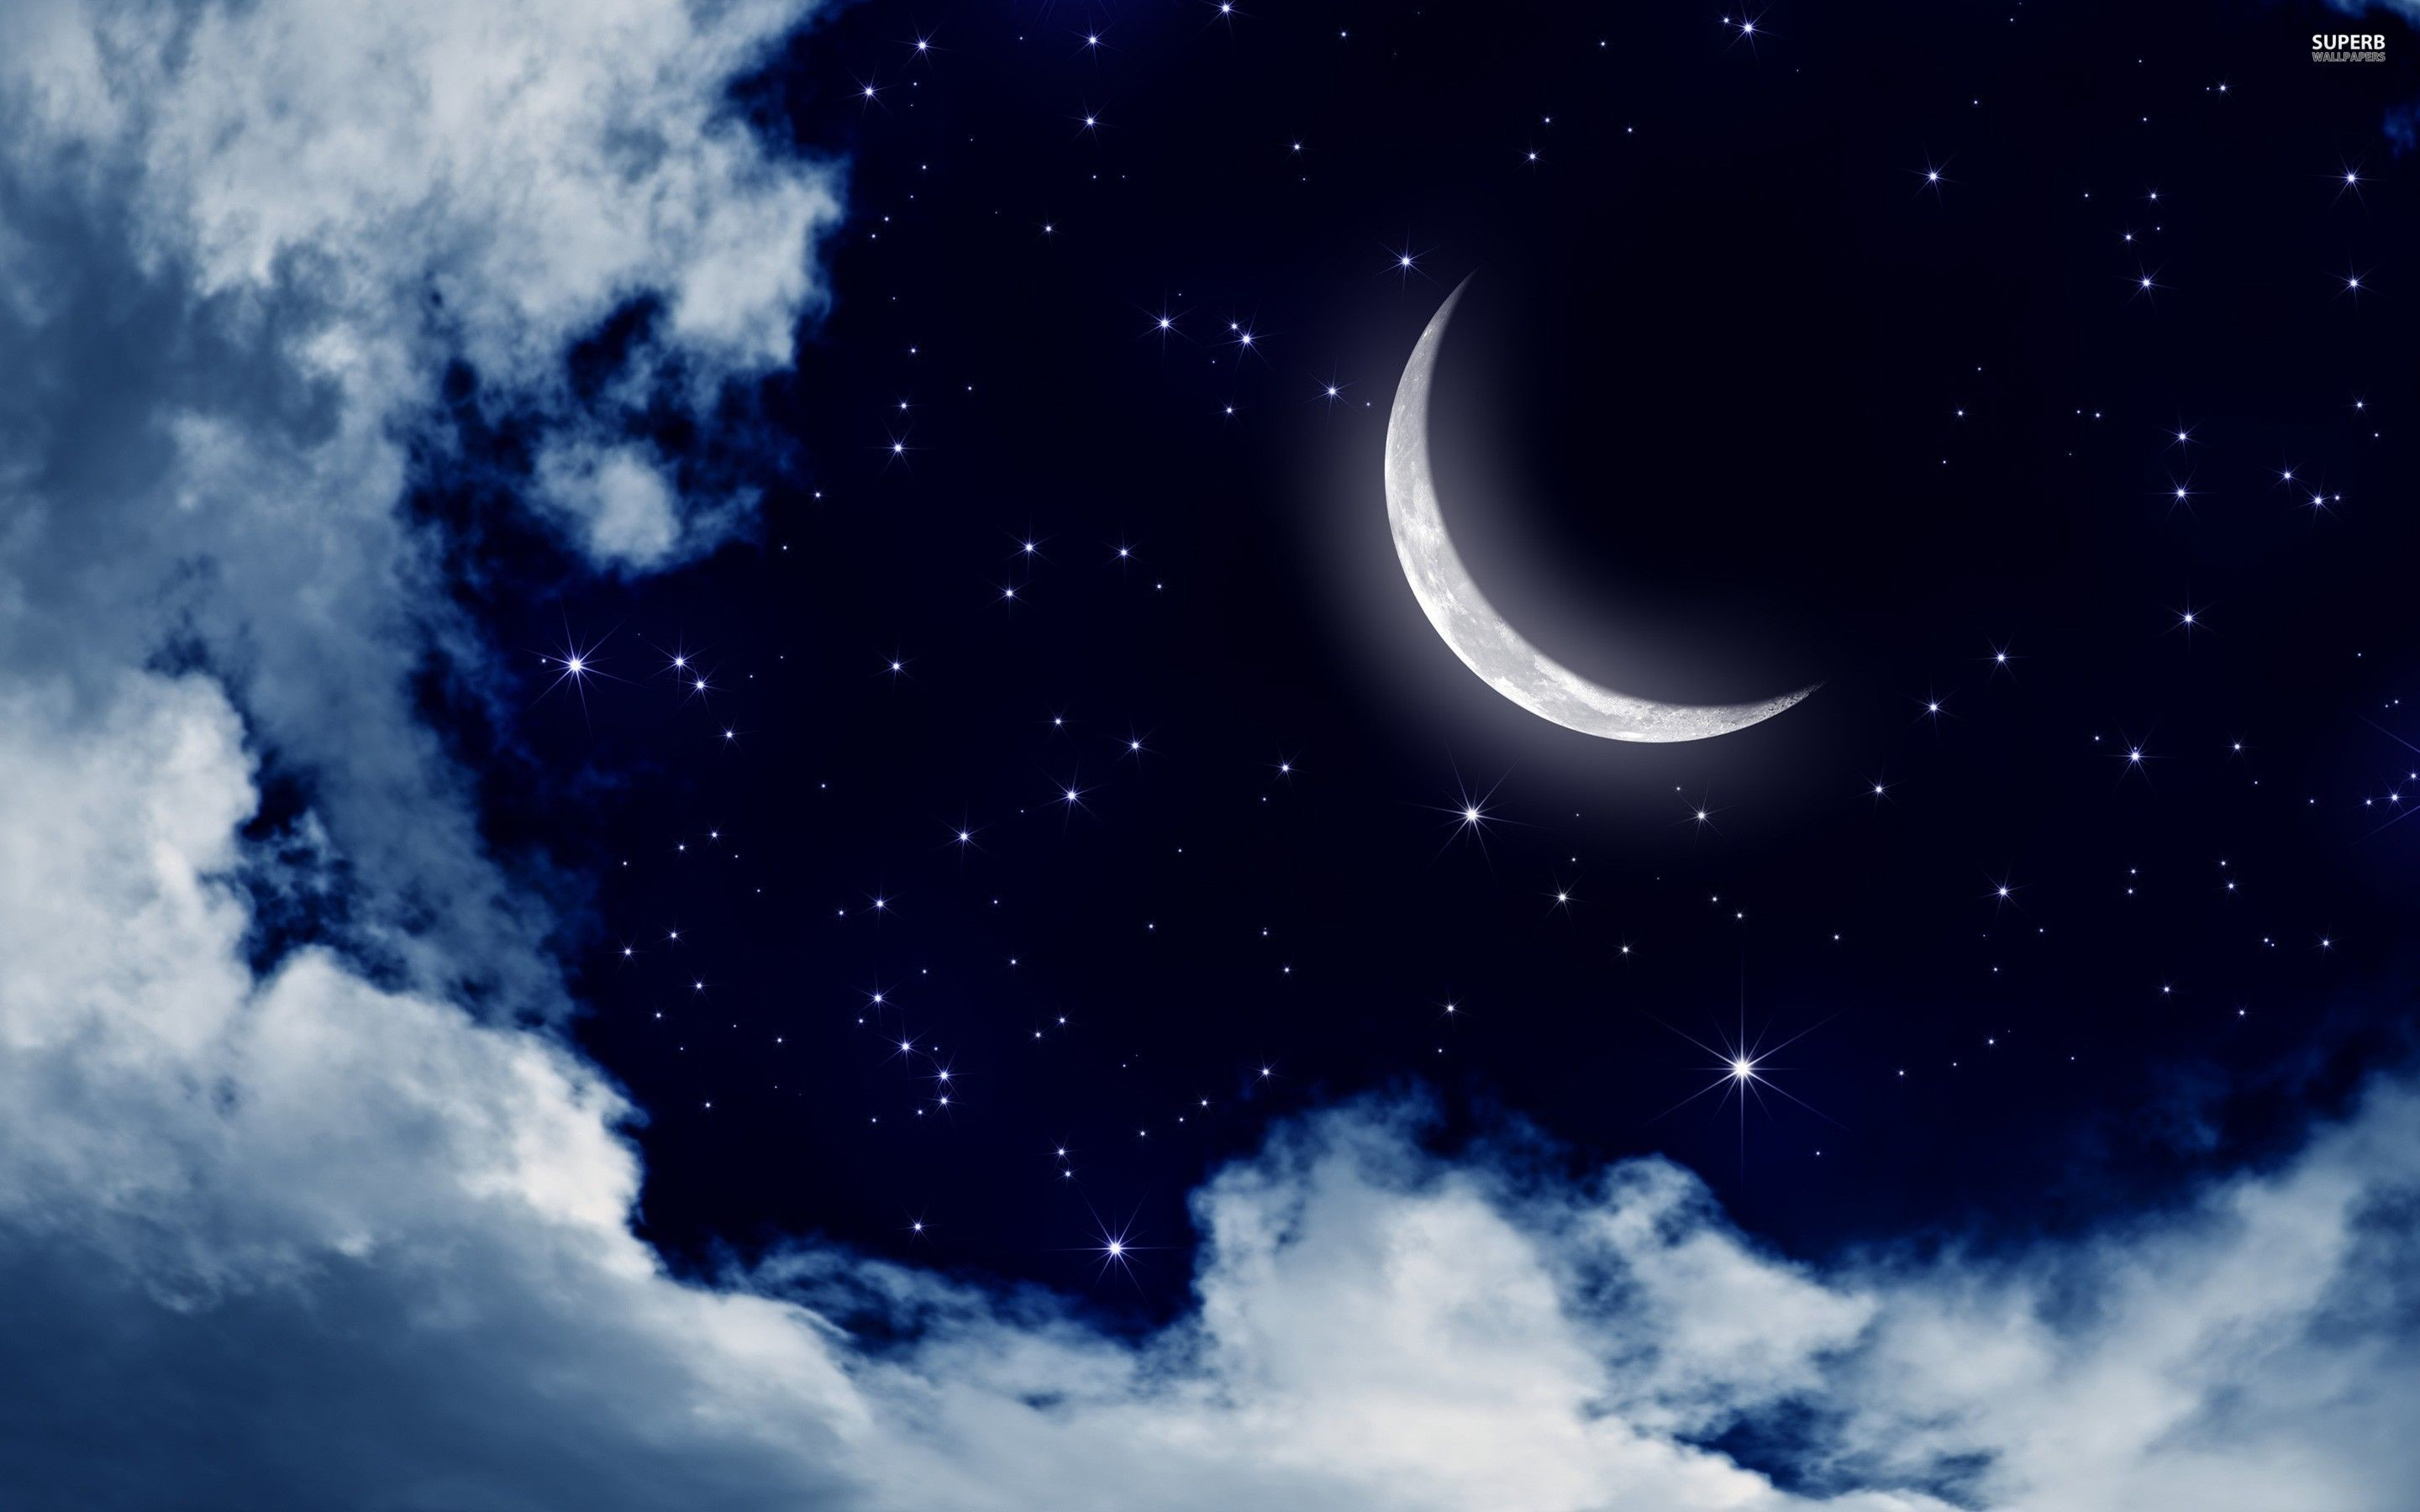 2880x1800 Moon and stars in the sky wallpaper - Digital Art wallpapers - #25176